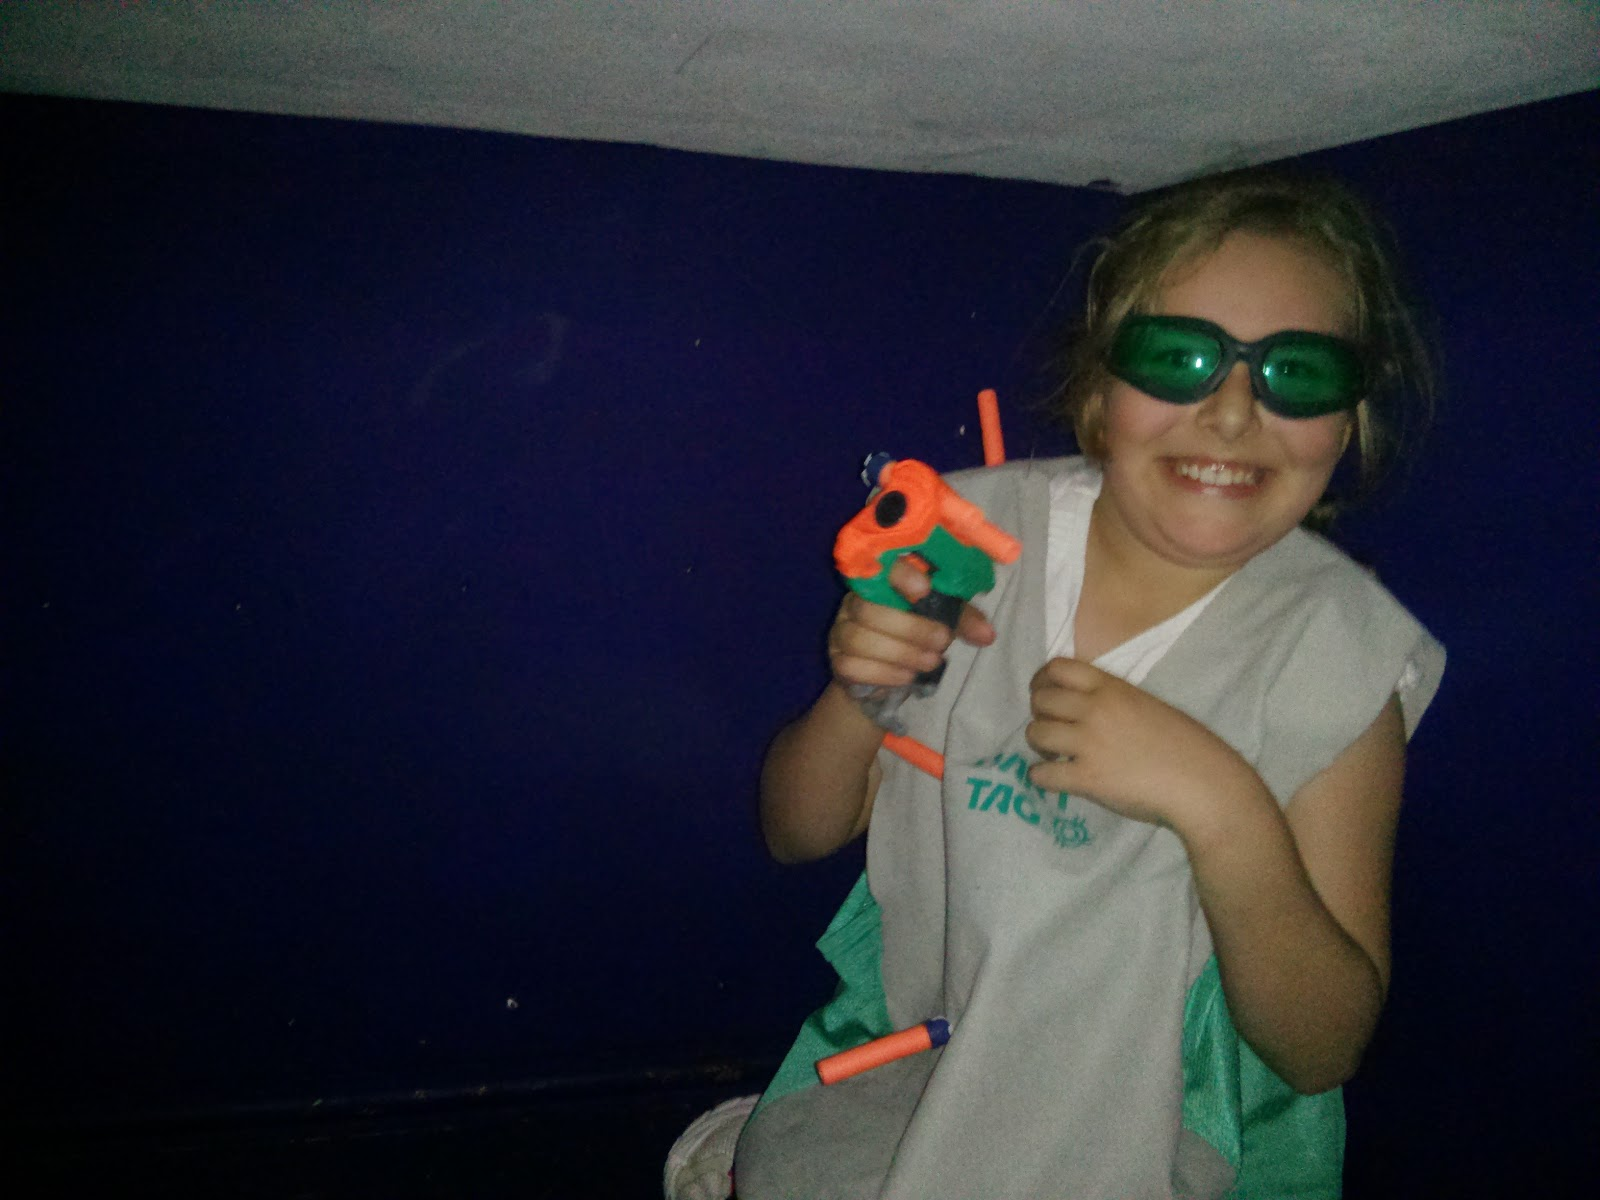 Top Ender at the Nerf Party Gullivers Land Milton Keynes